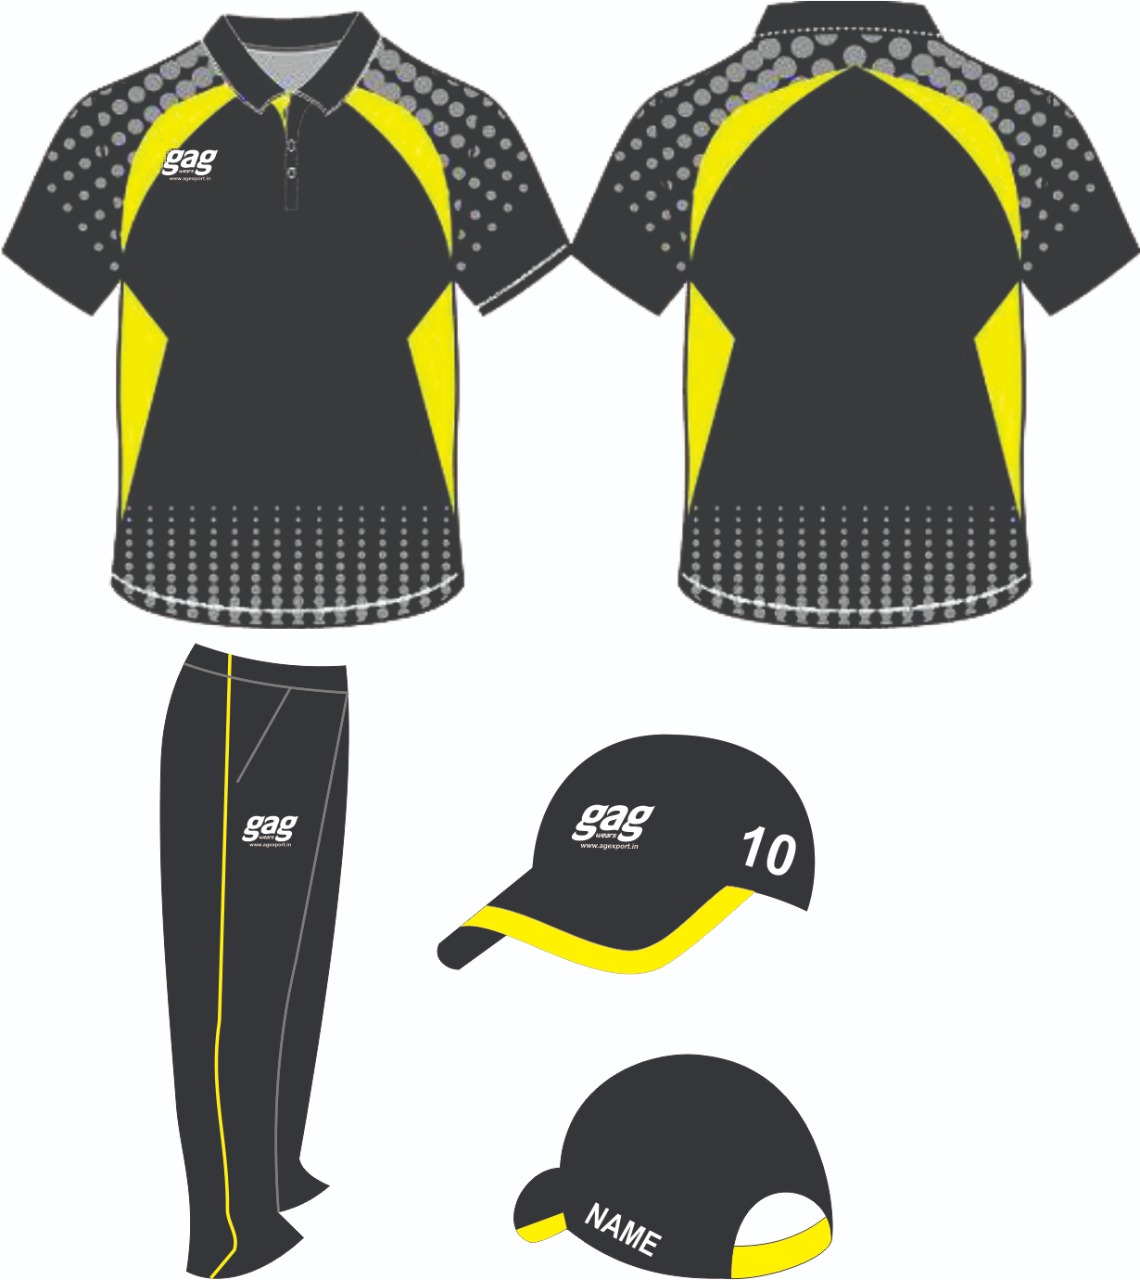 Cricket Uniform Manufacturers